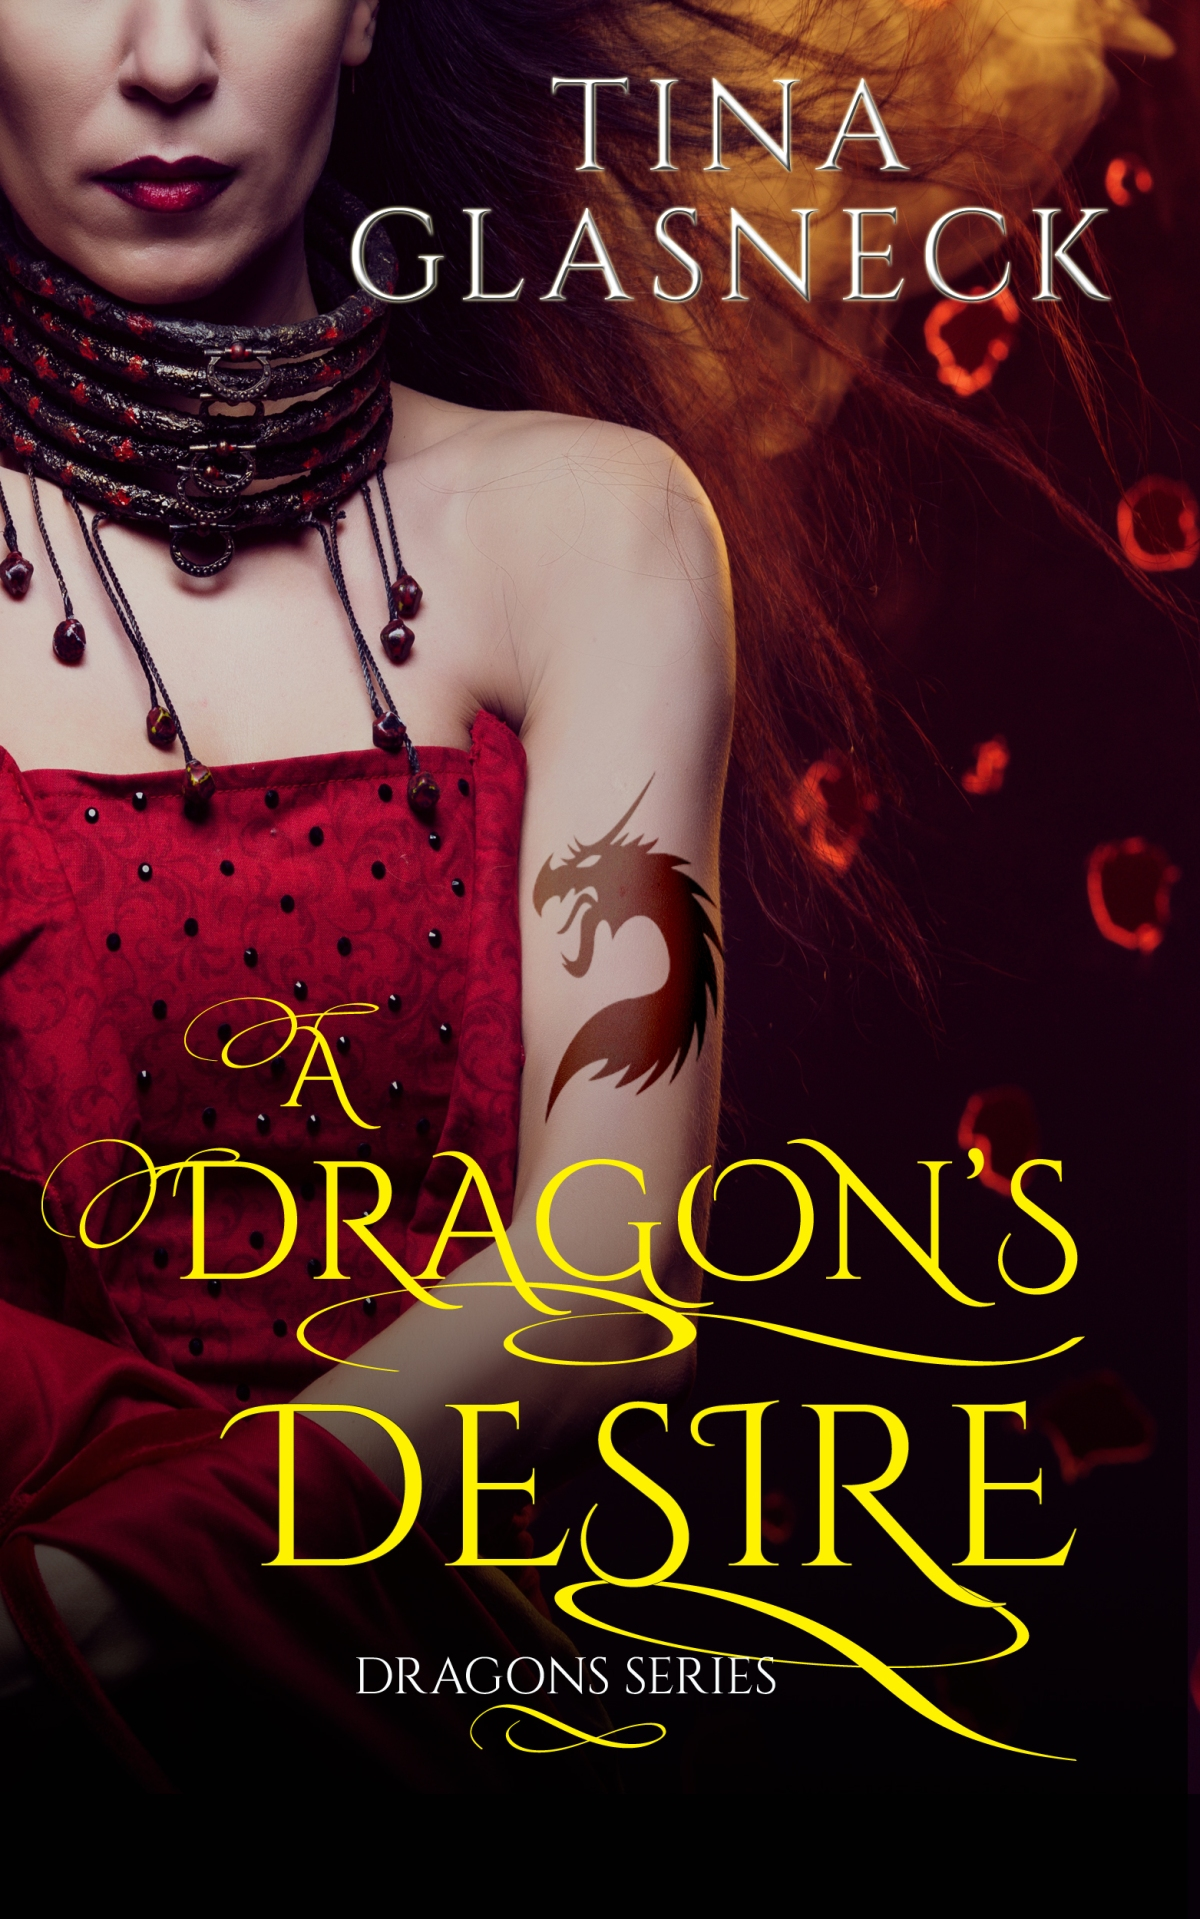 A Dragon's Desire- Tina Glasneck, #New Release